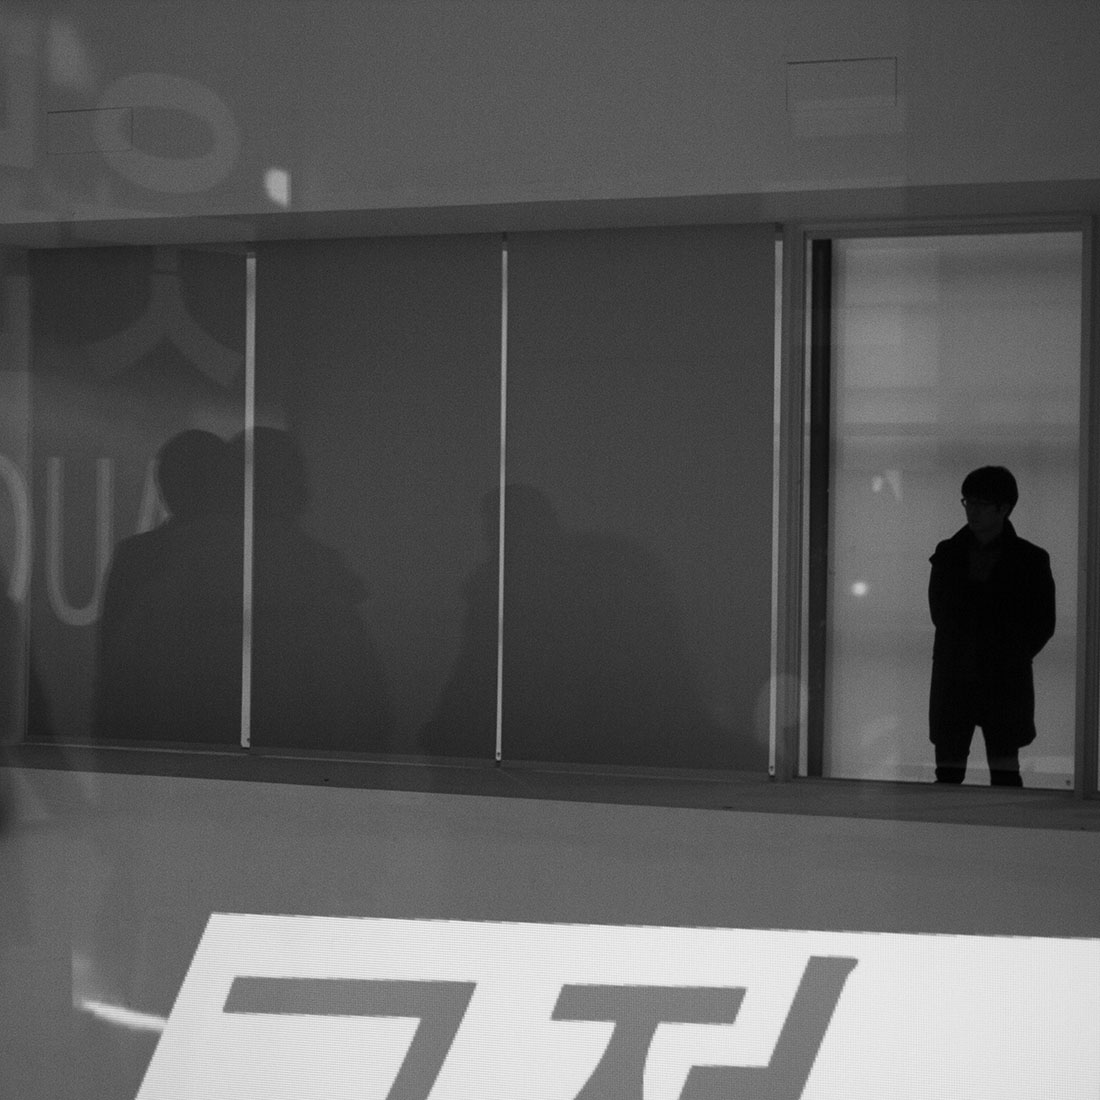 Man Silhouette, Black and white, typeface projection, Korean, YHCHI installation